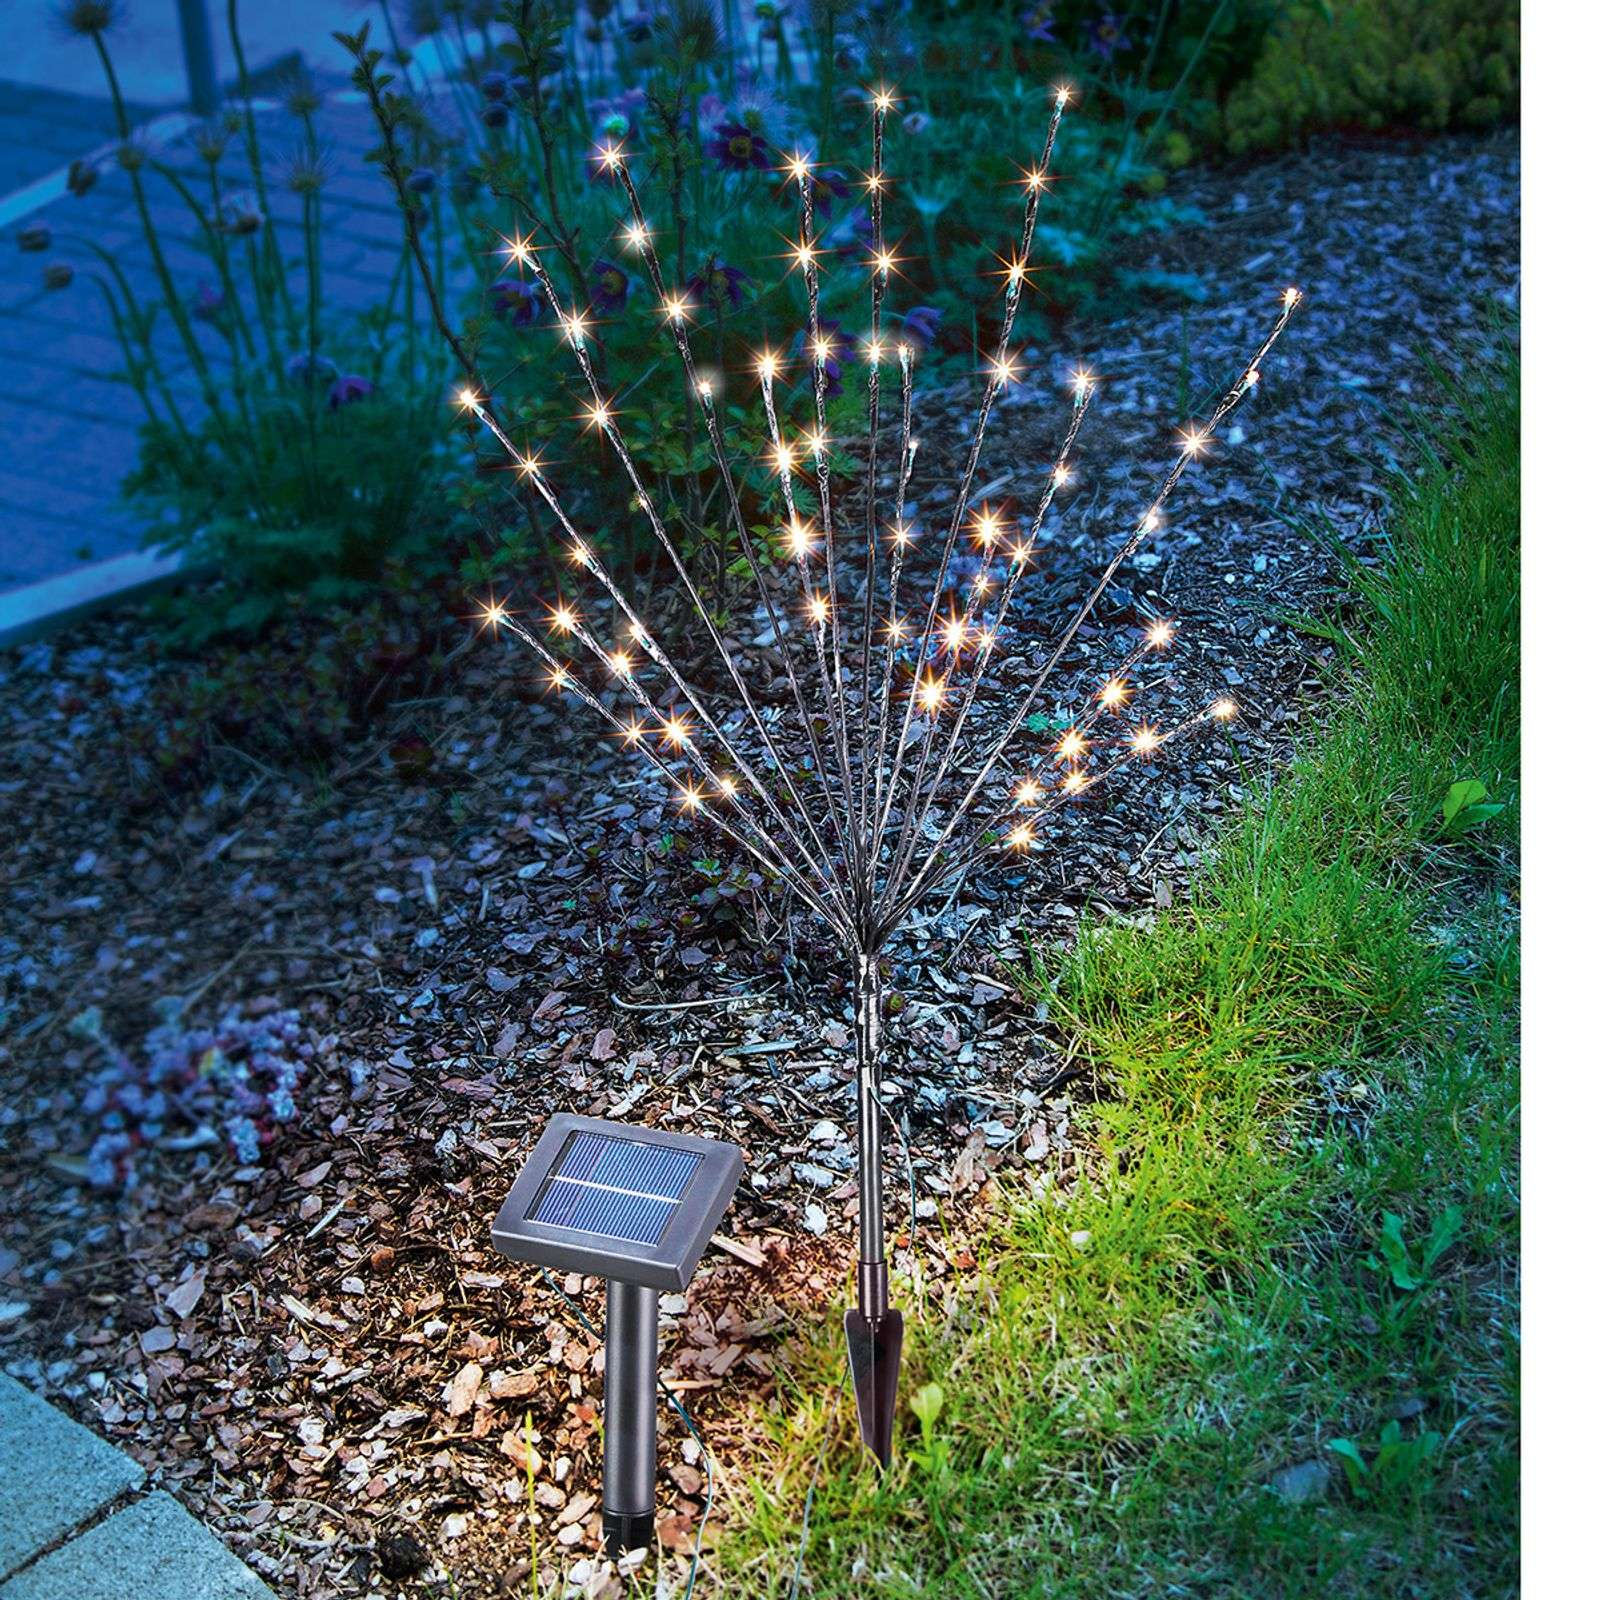 lamps garland in fairy lighting string christmas wedding novelty decorative led ball outdoor pendant lights decor item garden decoration from